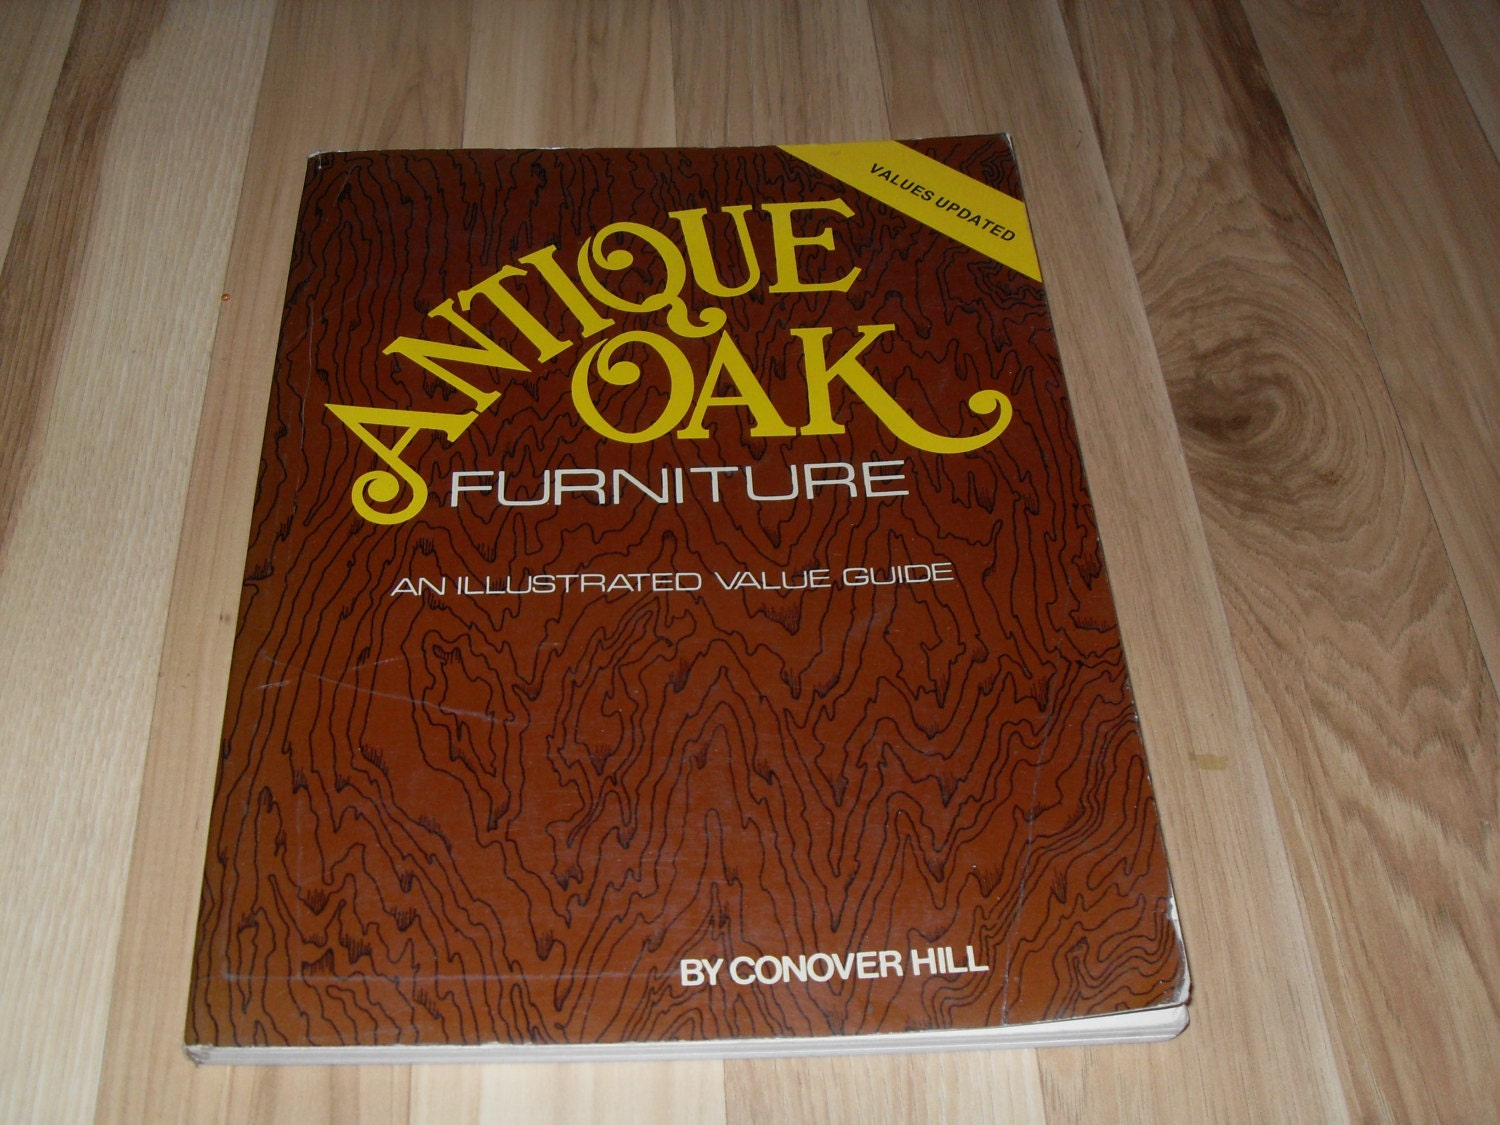 Antique oak furniture value guide by dovehillstudio on etsy for Furniture valuation guides